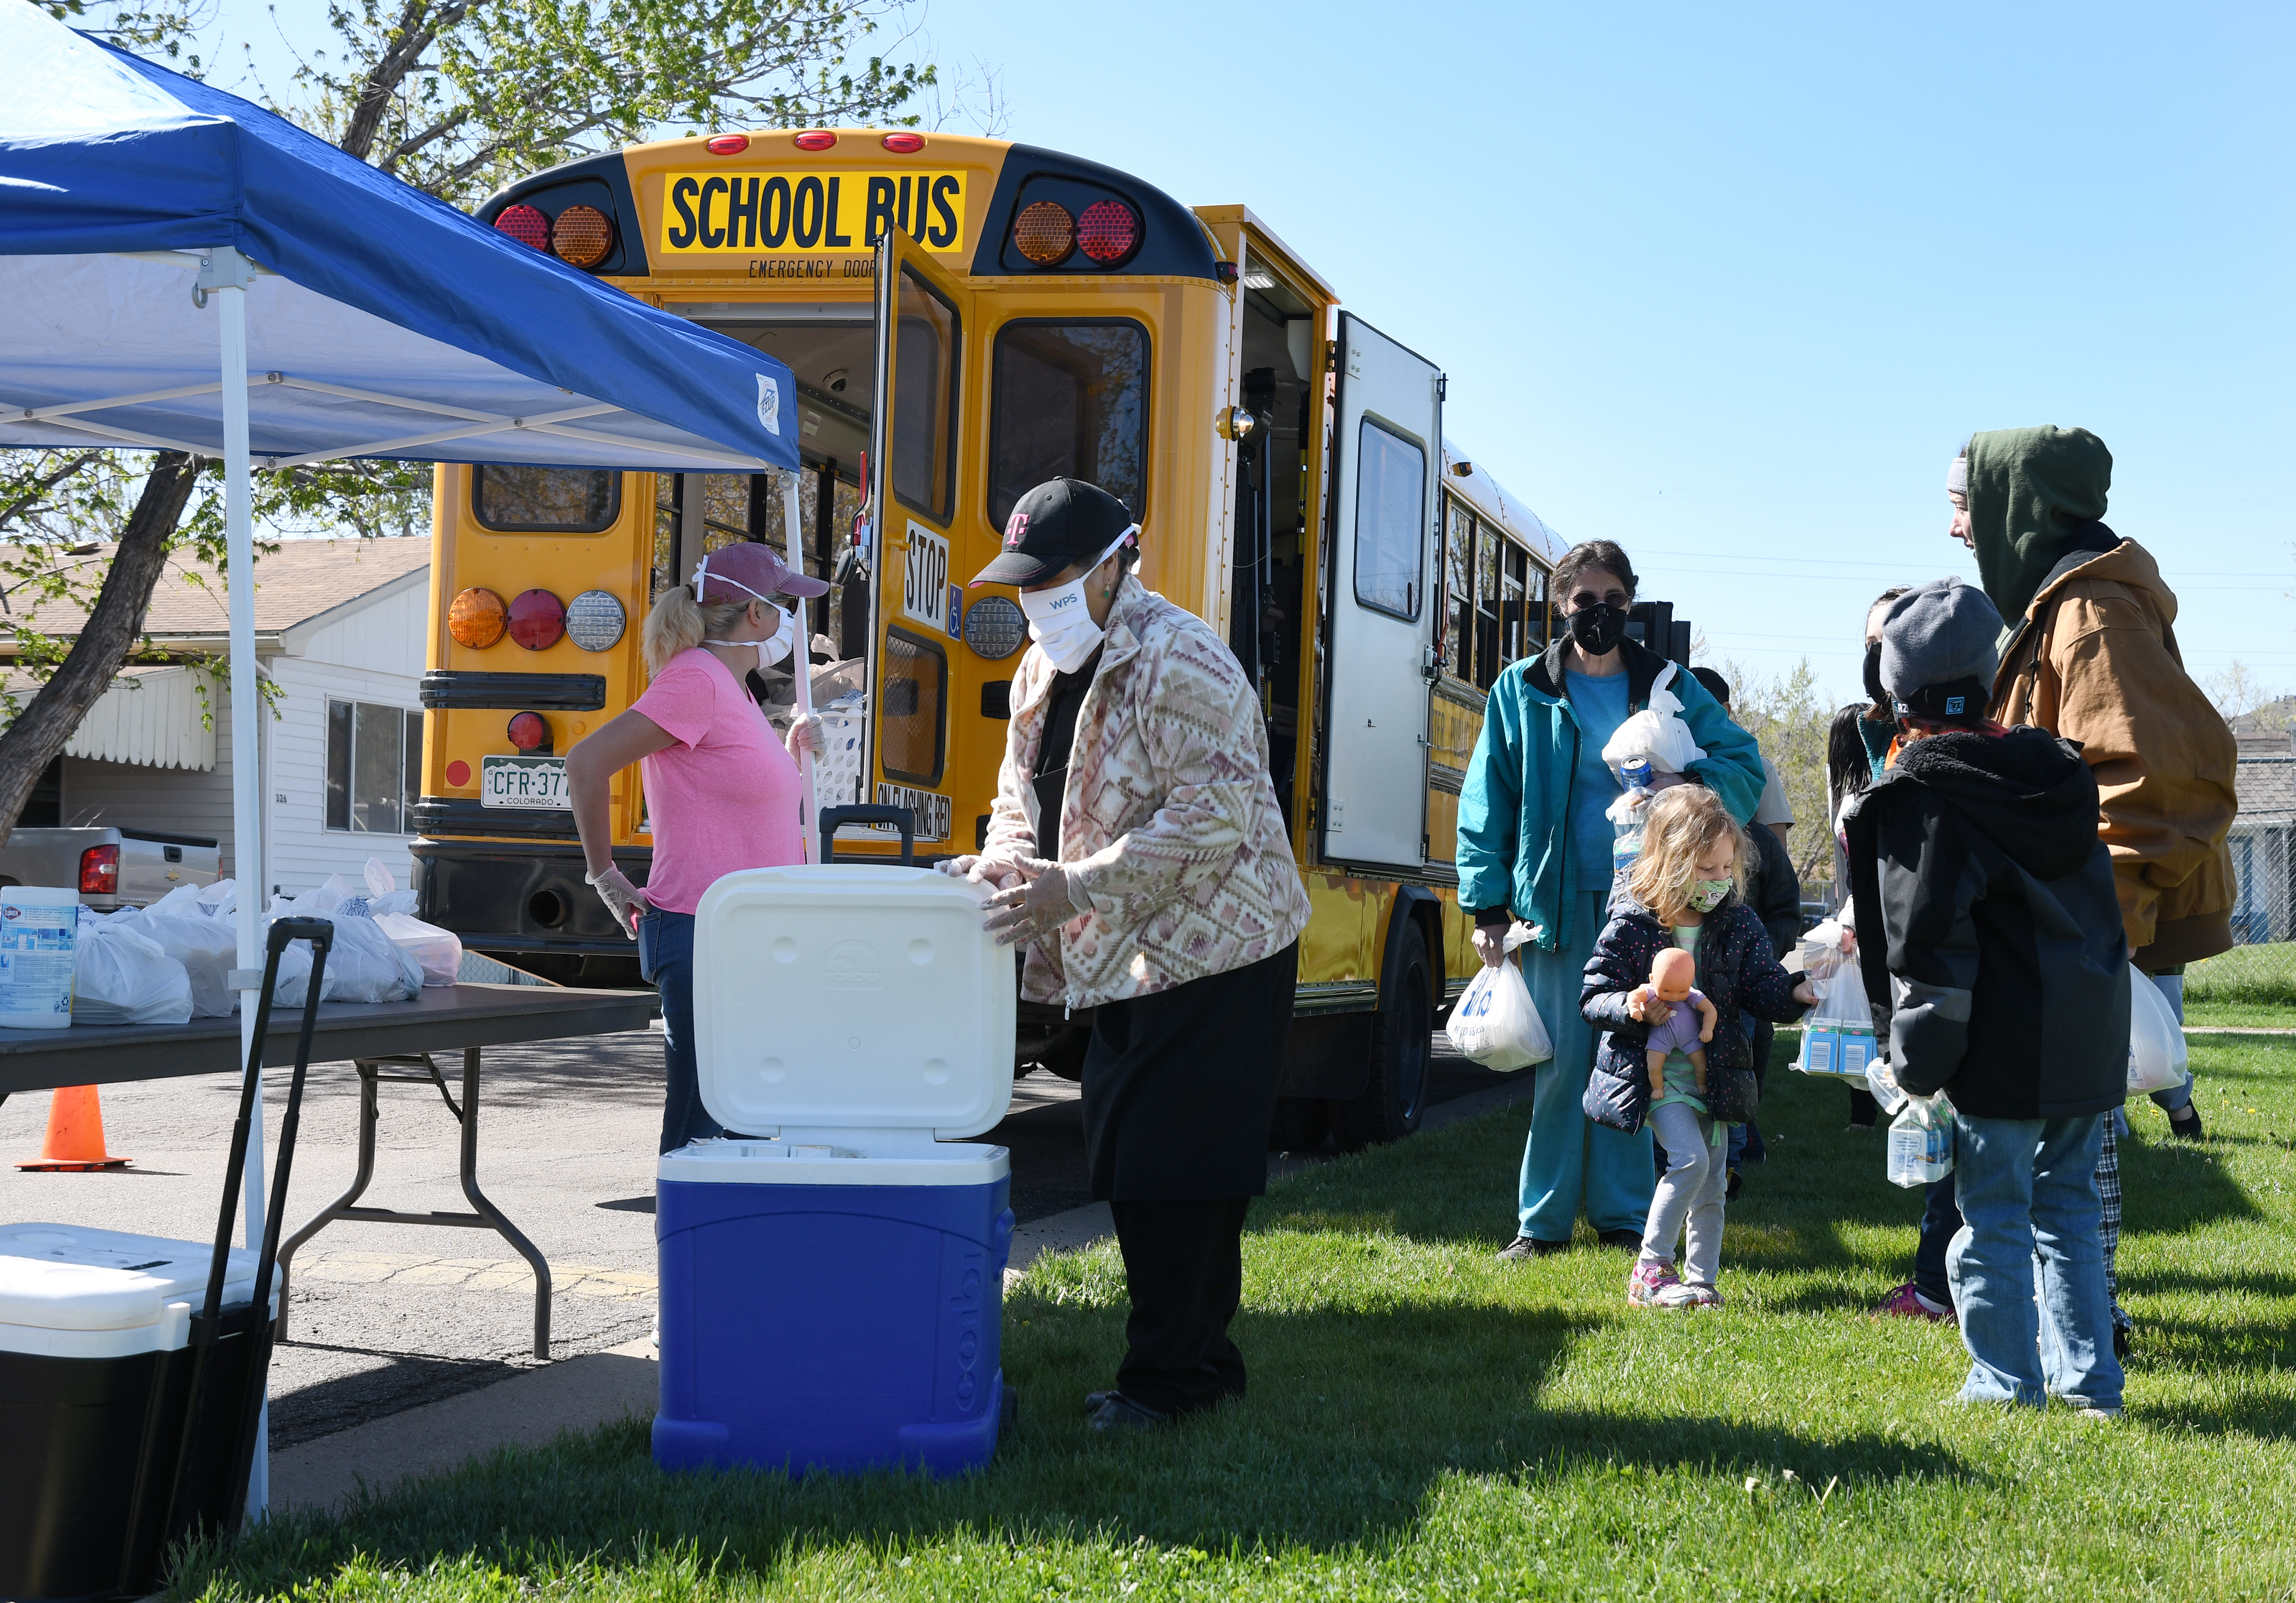 Children and adults wait for bagged food delivered by a school bus at Berkeley Village Mobile Home Park in Arvada, Colorado.